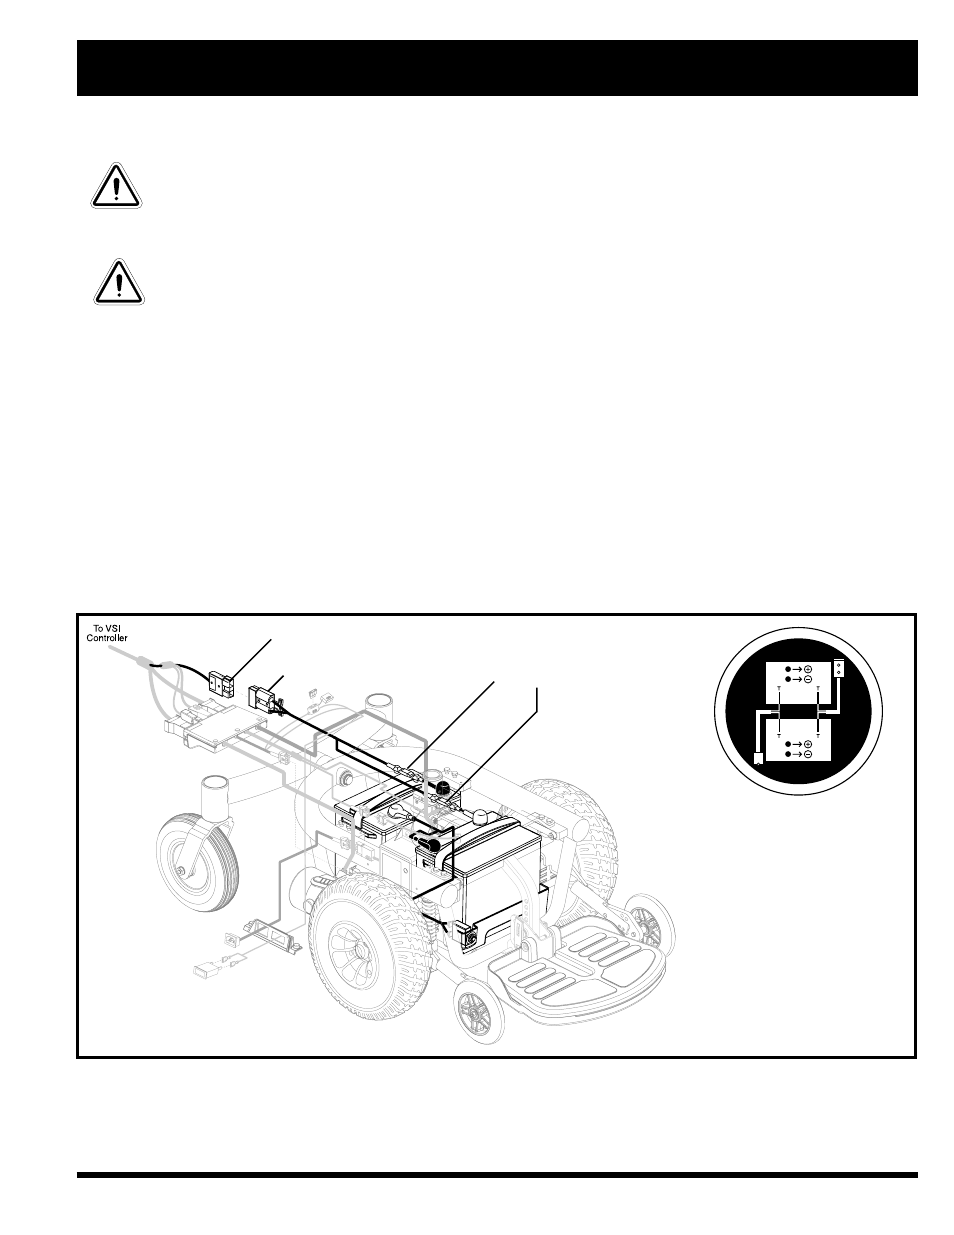 pride mobility jazzy 1103 ultra page51 pride mobility jazzy 1103 ultra user manual page 51 55 jazzy 1103 ultra wiring diagram at soozxer.org